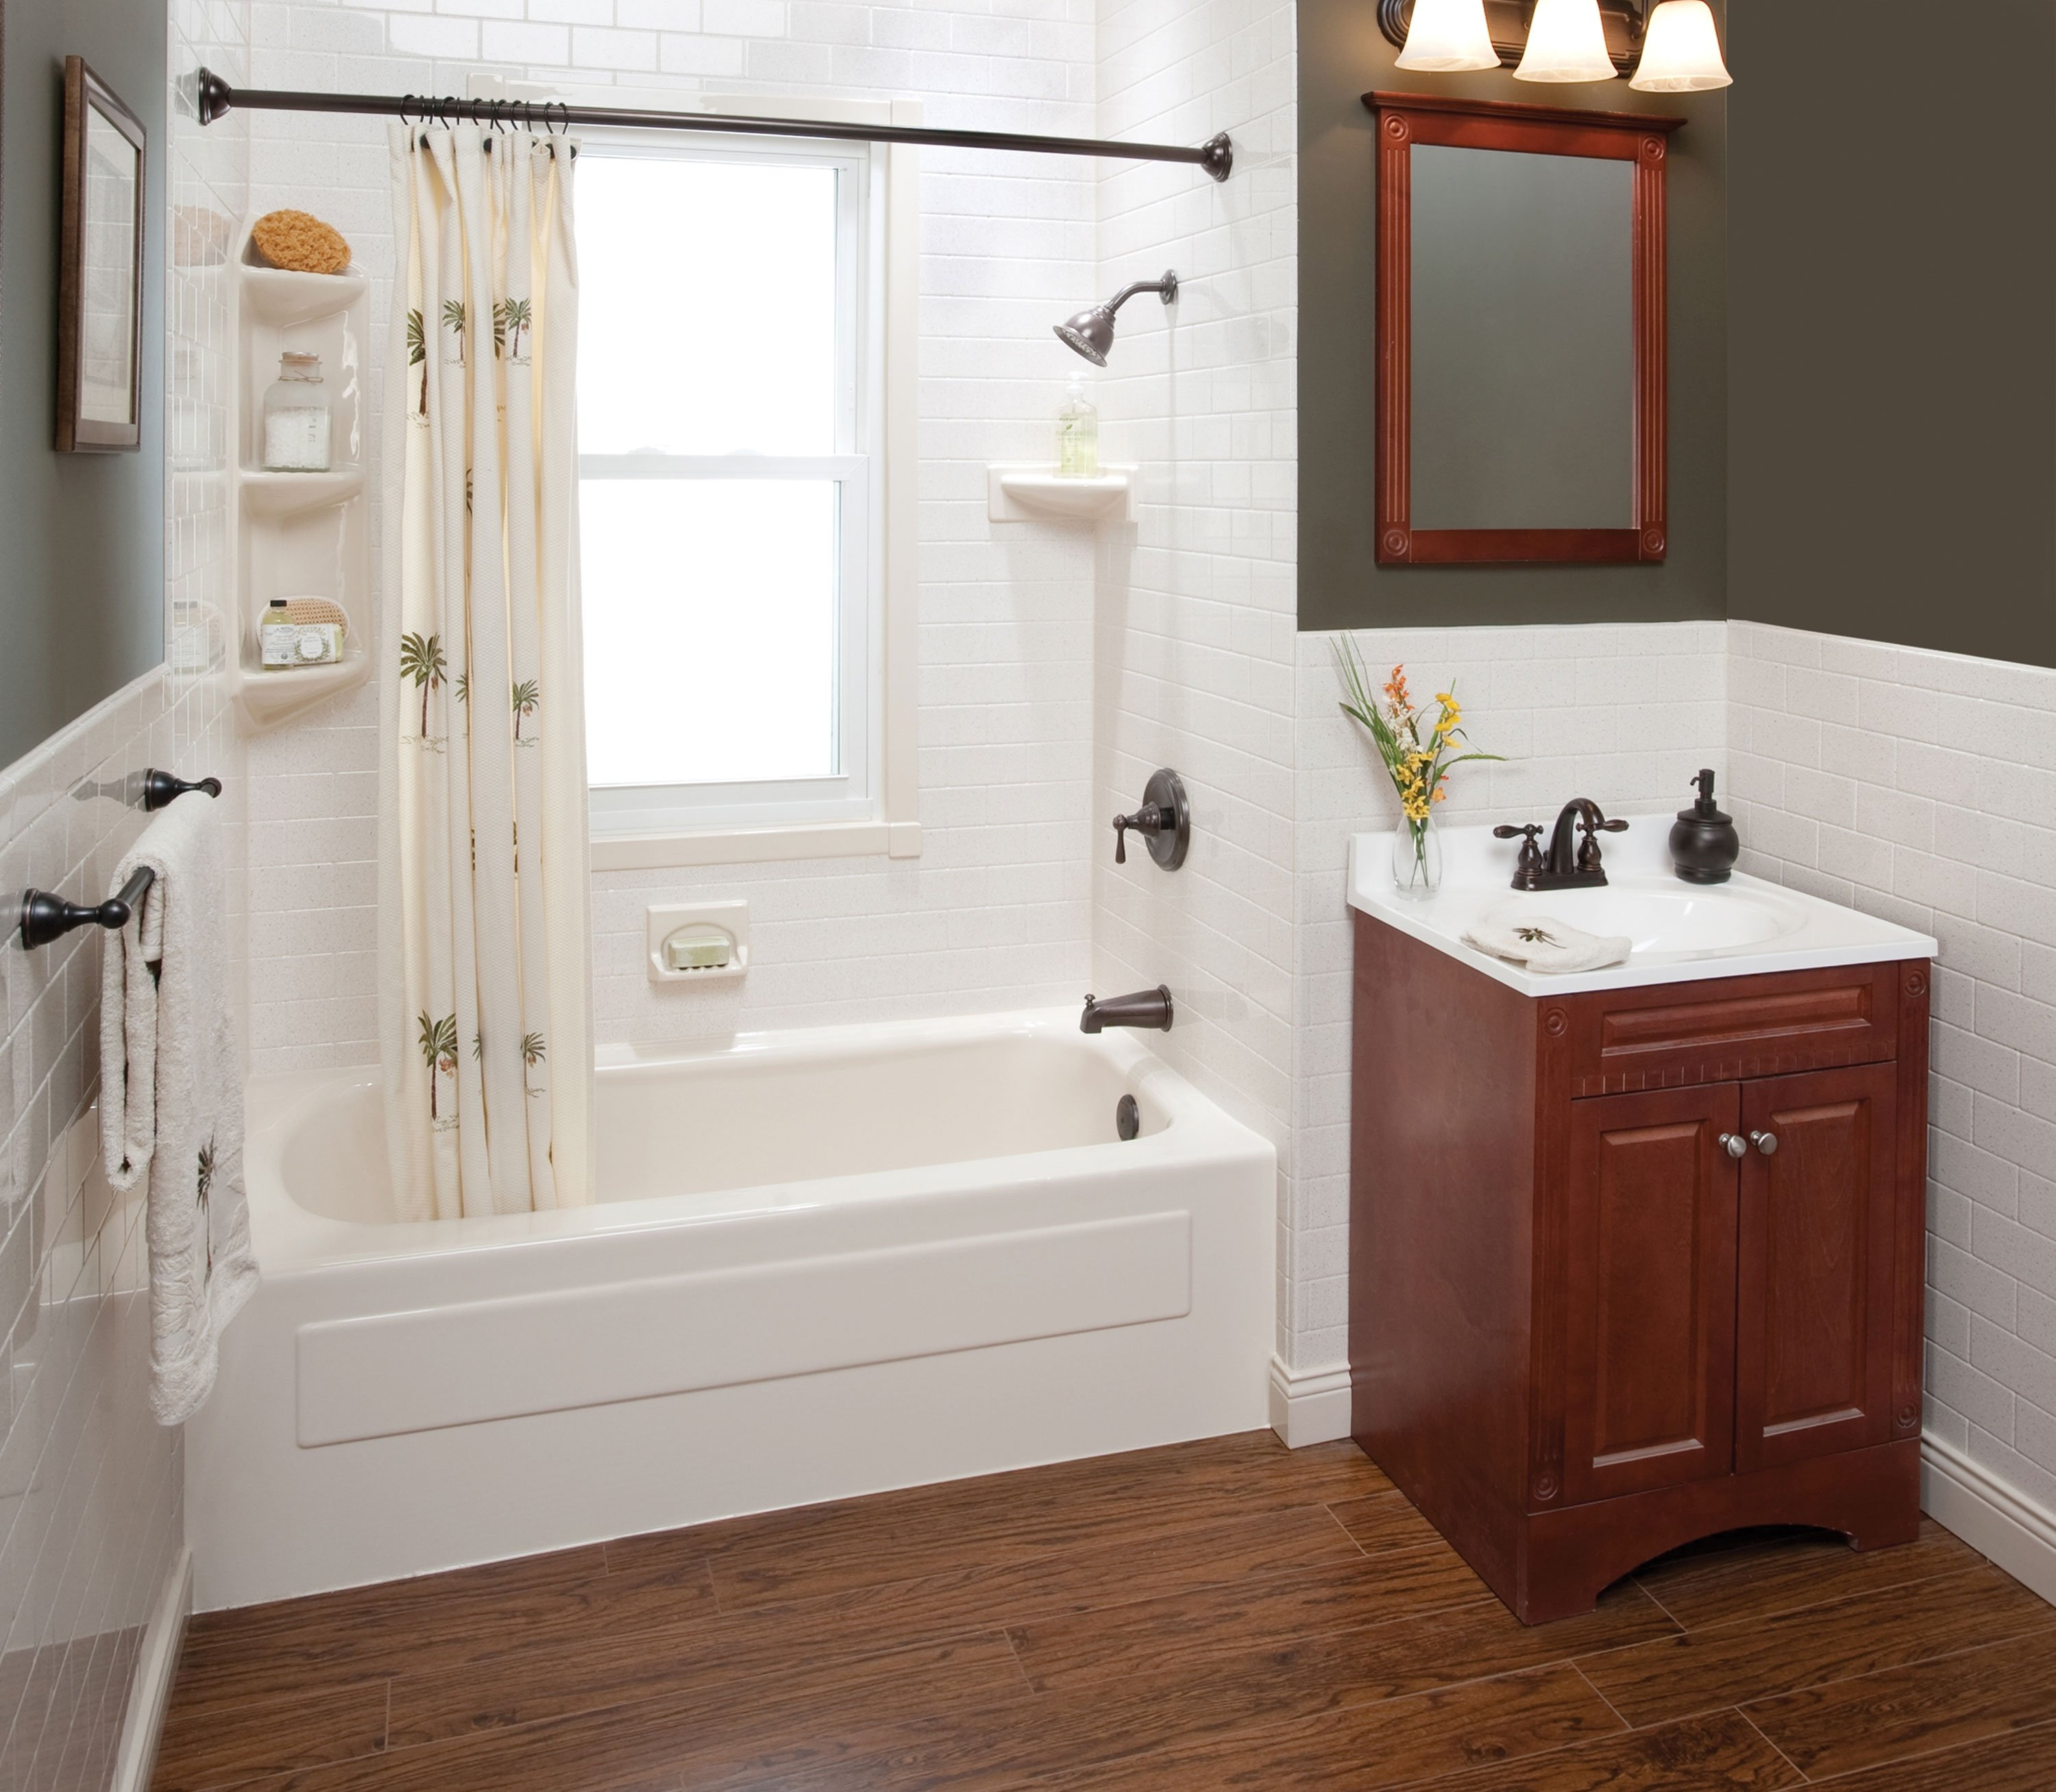 10 Perfect Low Cost Bathroom Remodel Ideas low cost bathroom remodel creative information about home interior